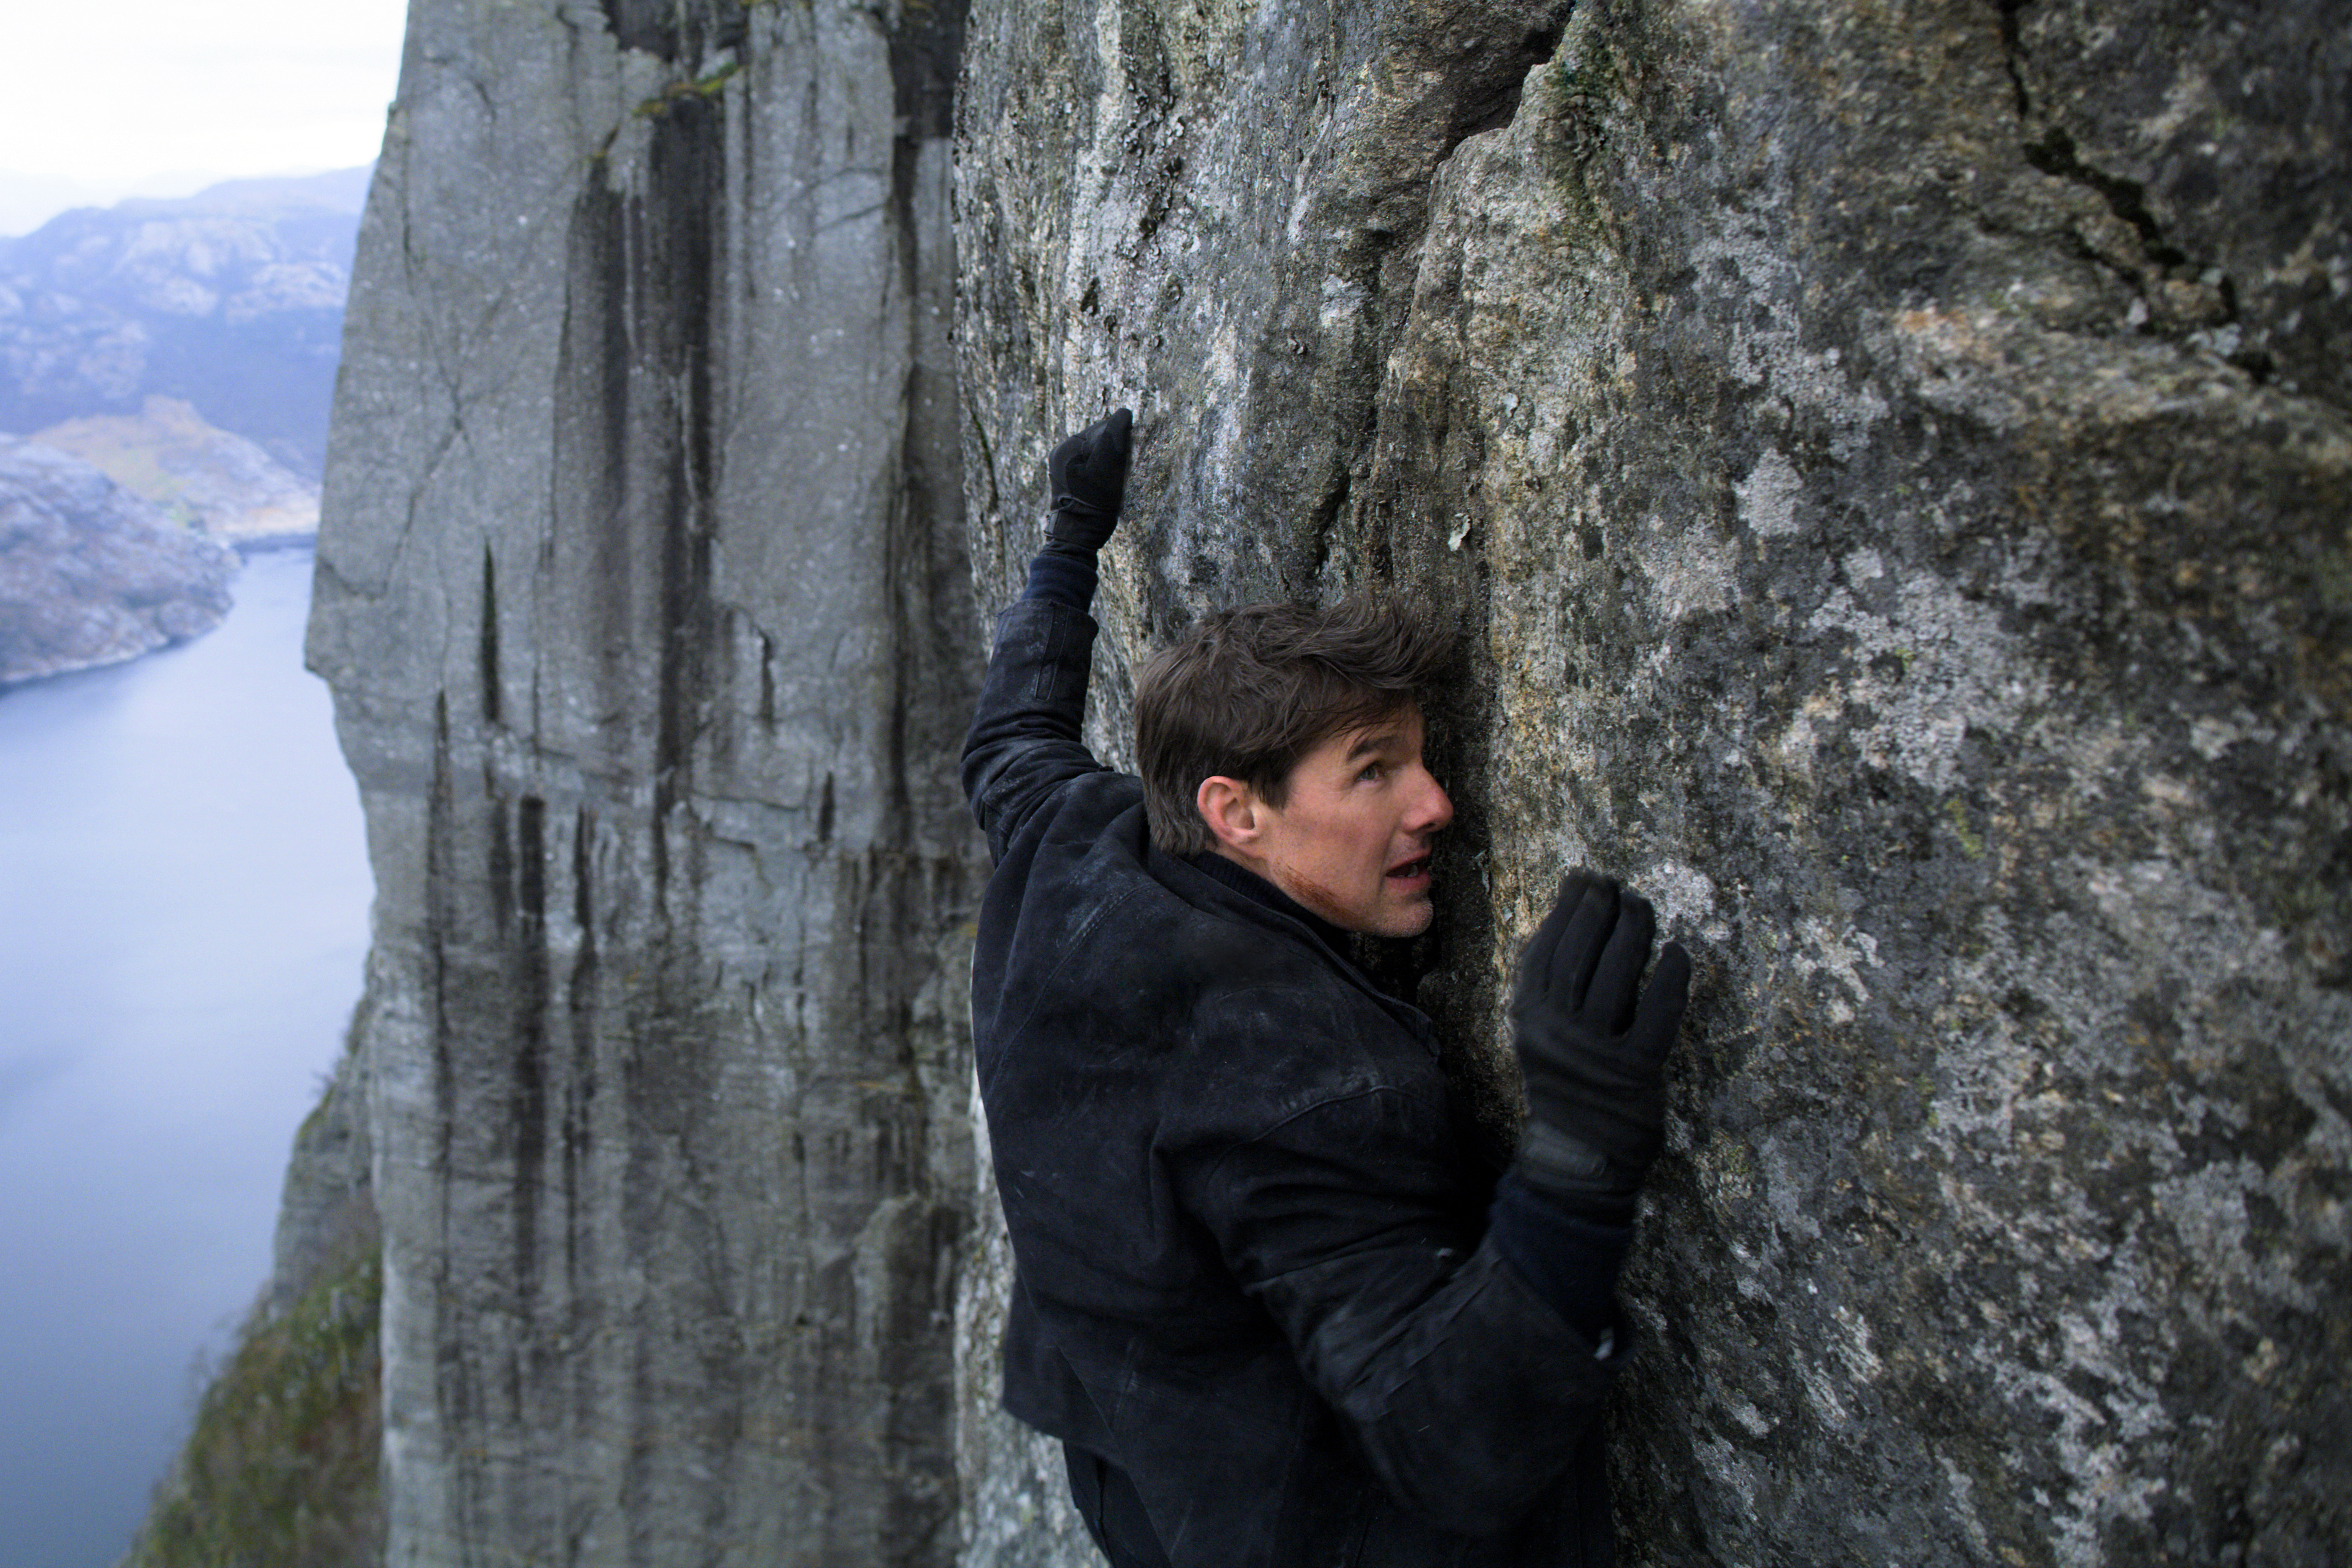 Tom Cruise As Ethan Hunt In Mission Impossible Fallout From Paramount Pictures And